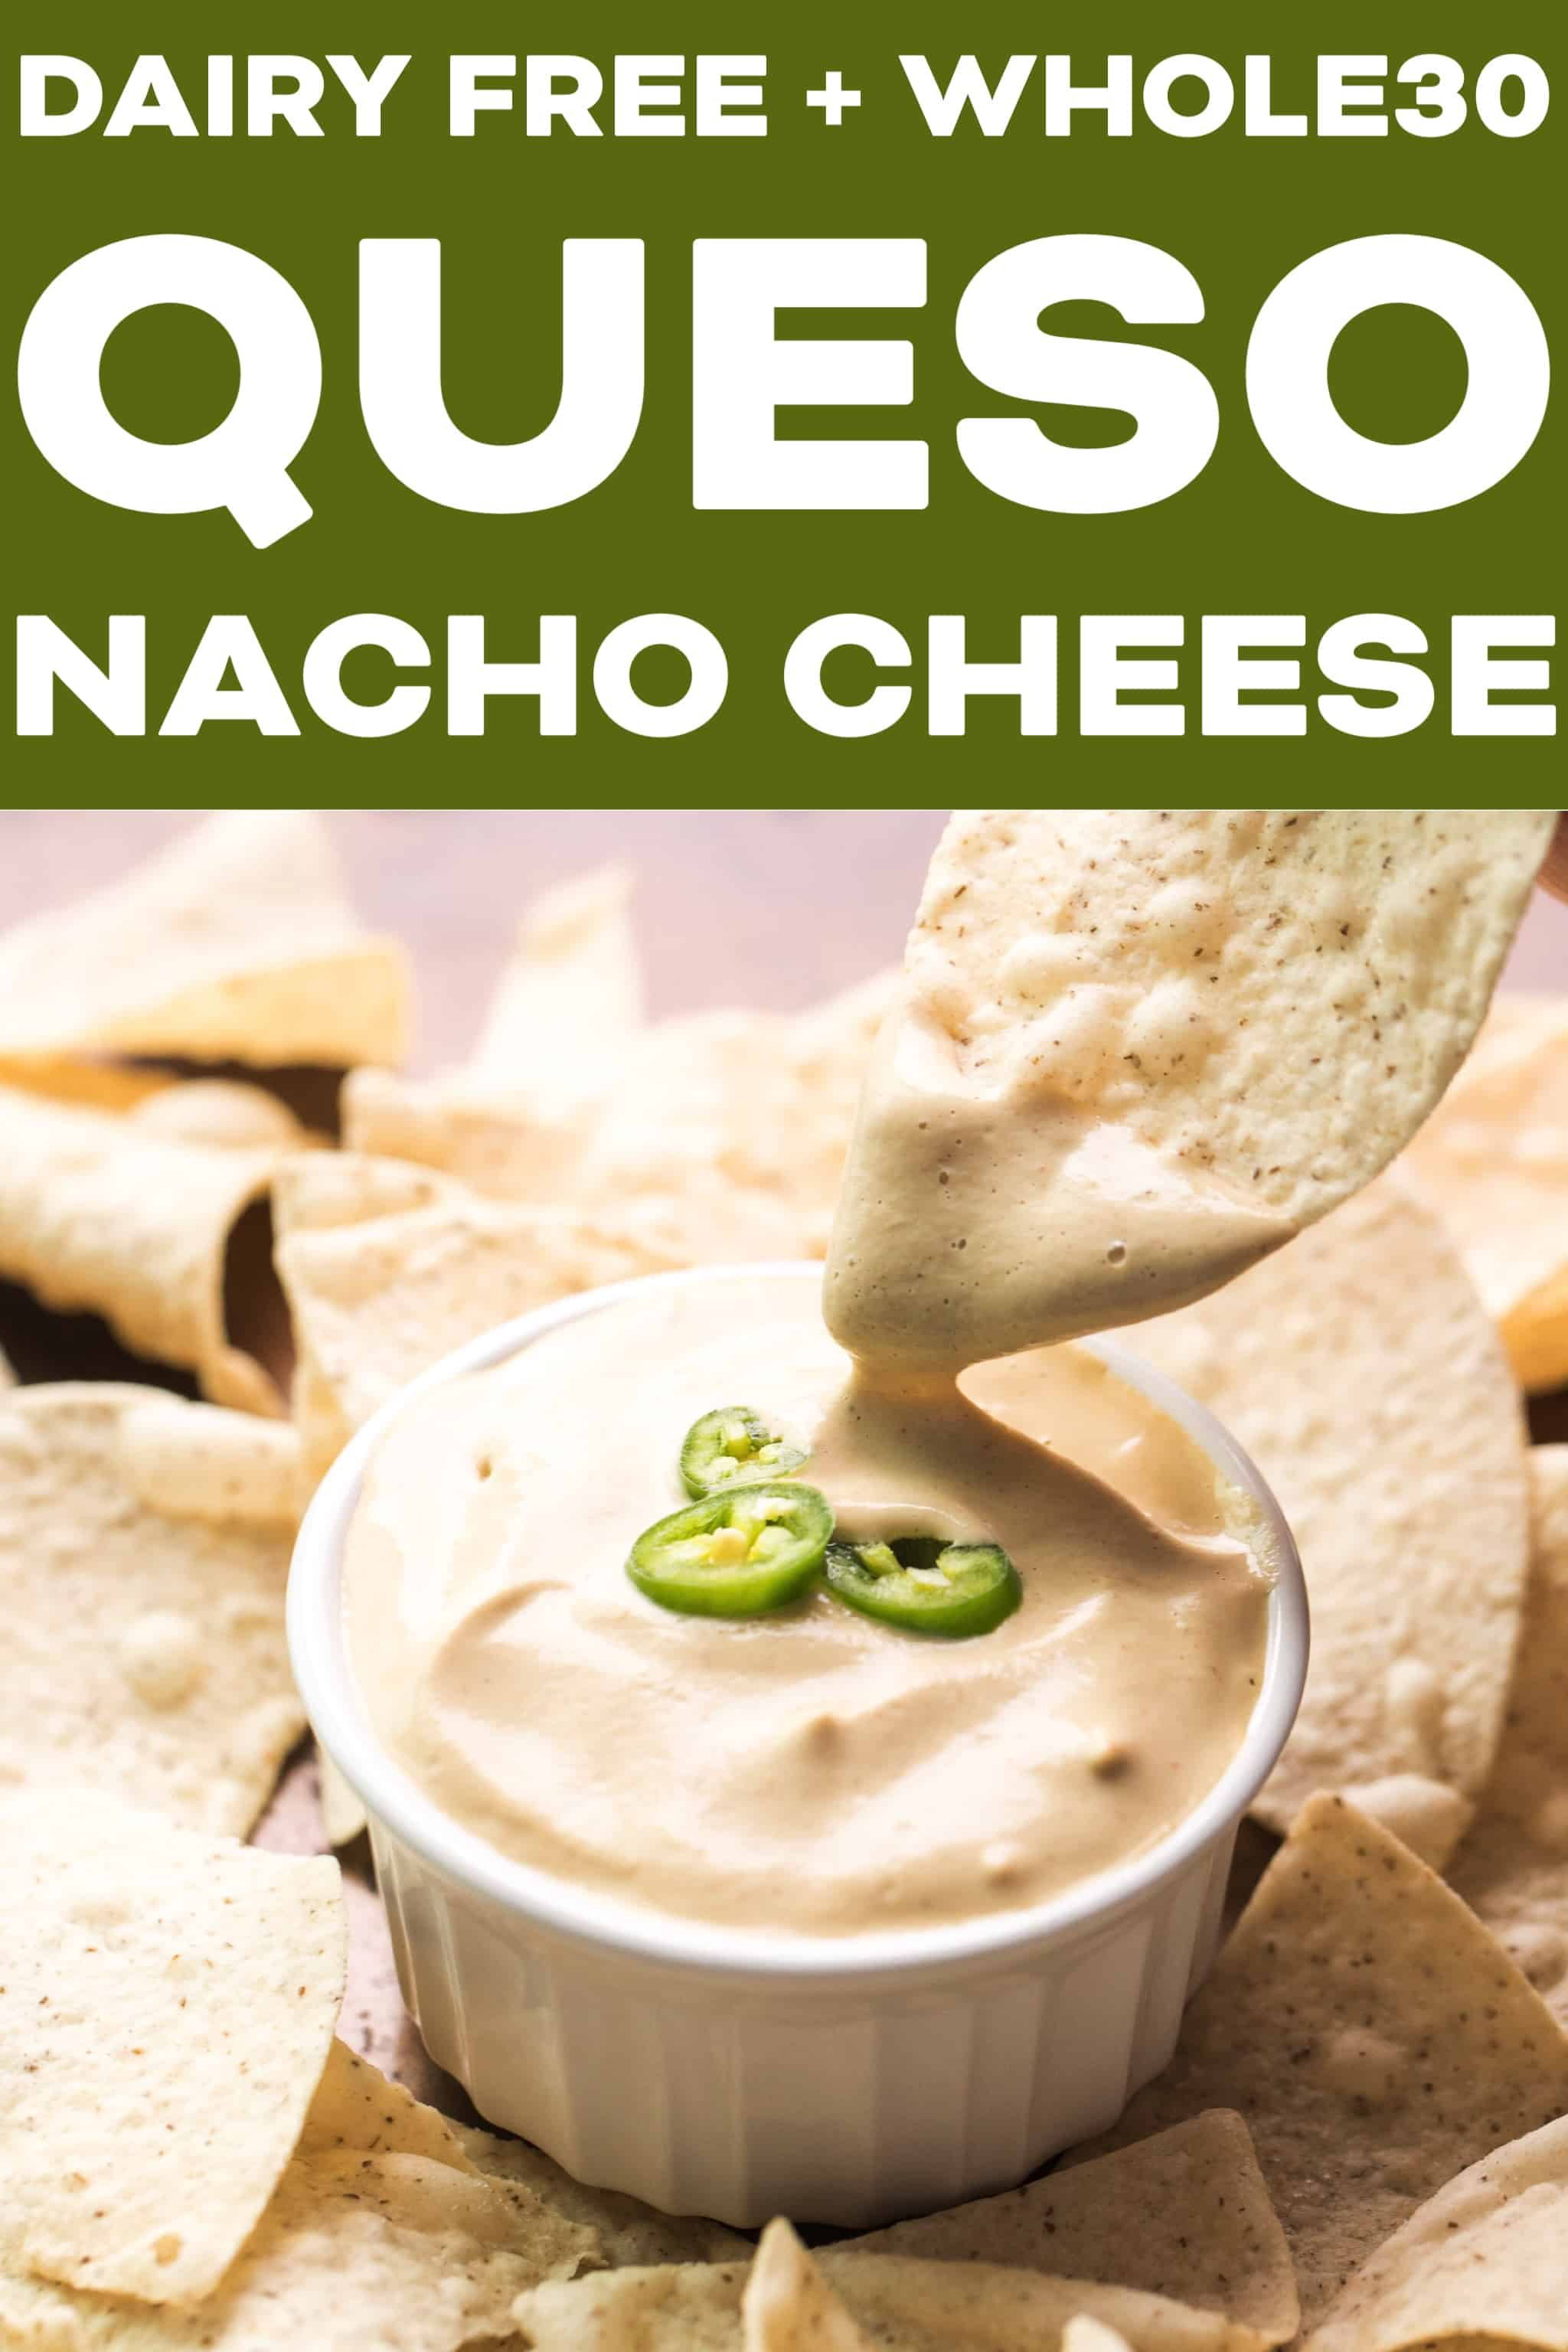 Whole30 + Dairy Free Queso Nacho Cheese - Tastes Lovely